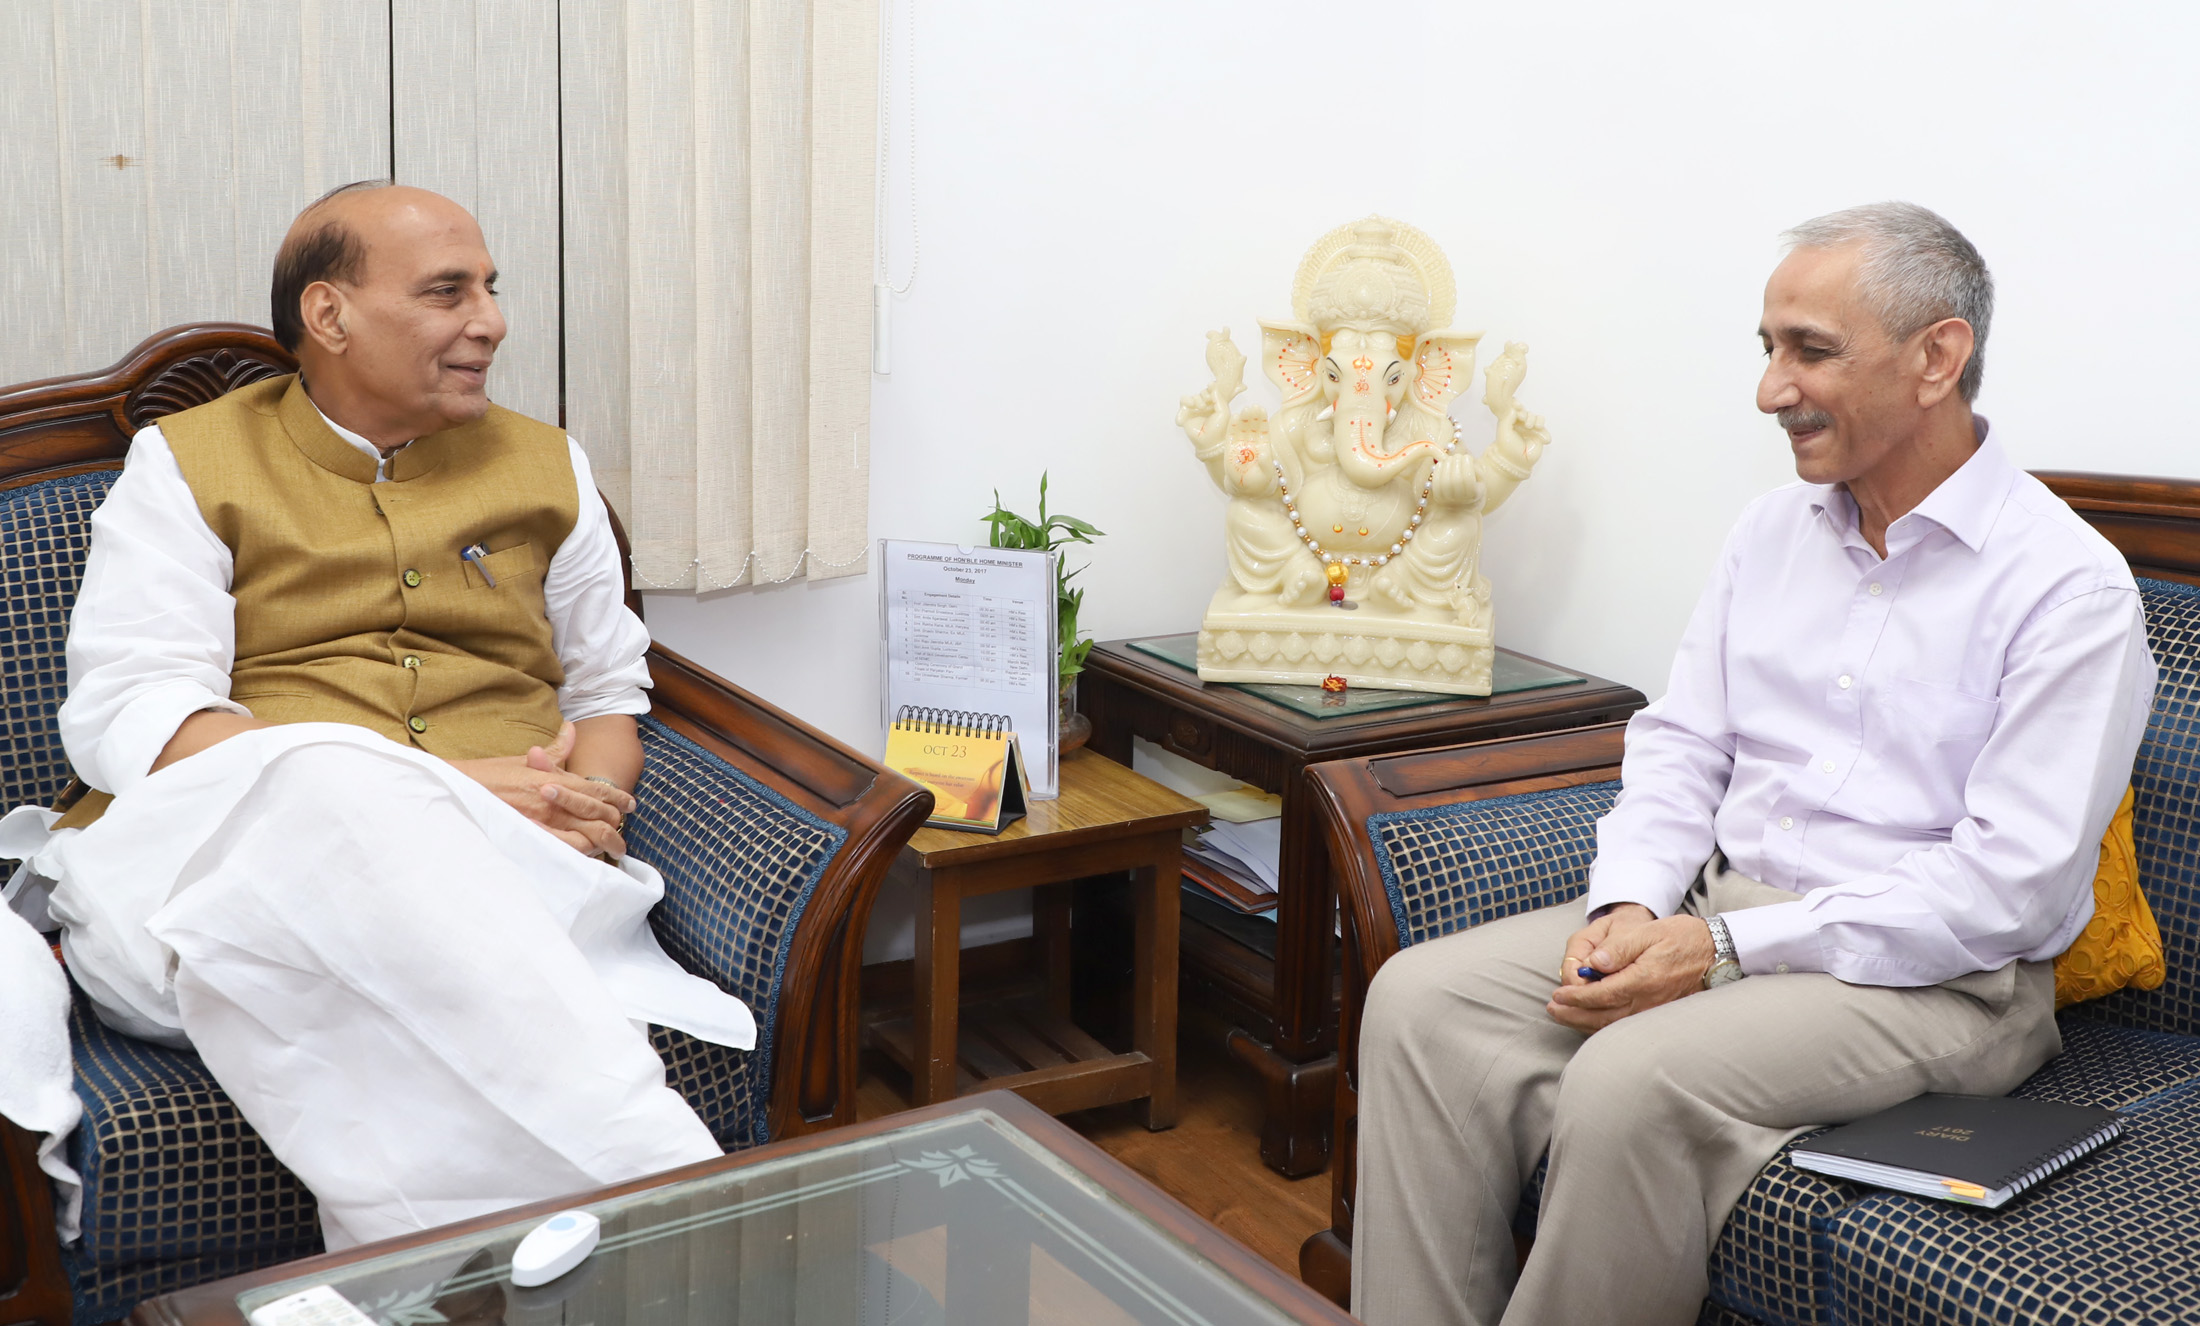 Dineshwar Sharma, former director of Intelligence Bureau, calling on Union home minister Rajnath Singh after being appointed as the representative of government of India to initiate dialogue in Jammu and Kashmir, in New Delhi on October 23, 2017. Credit: PIB